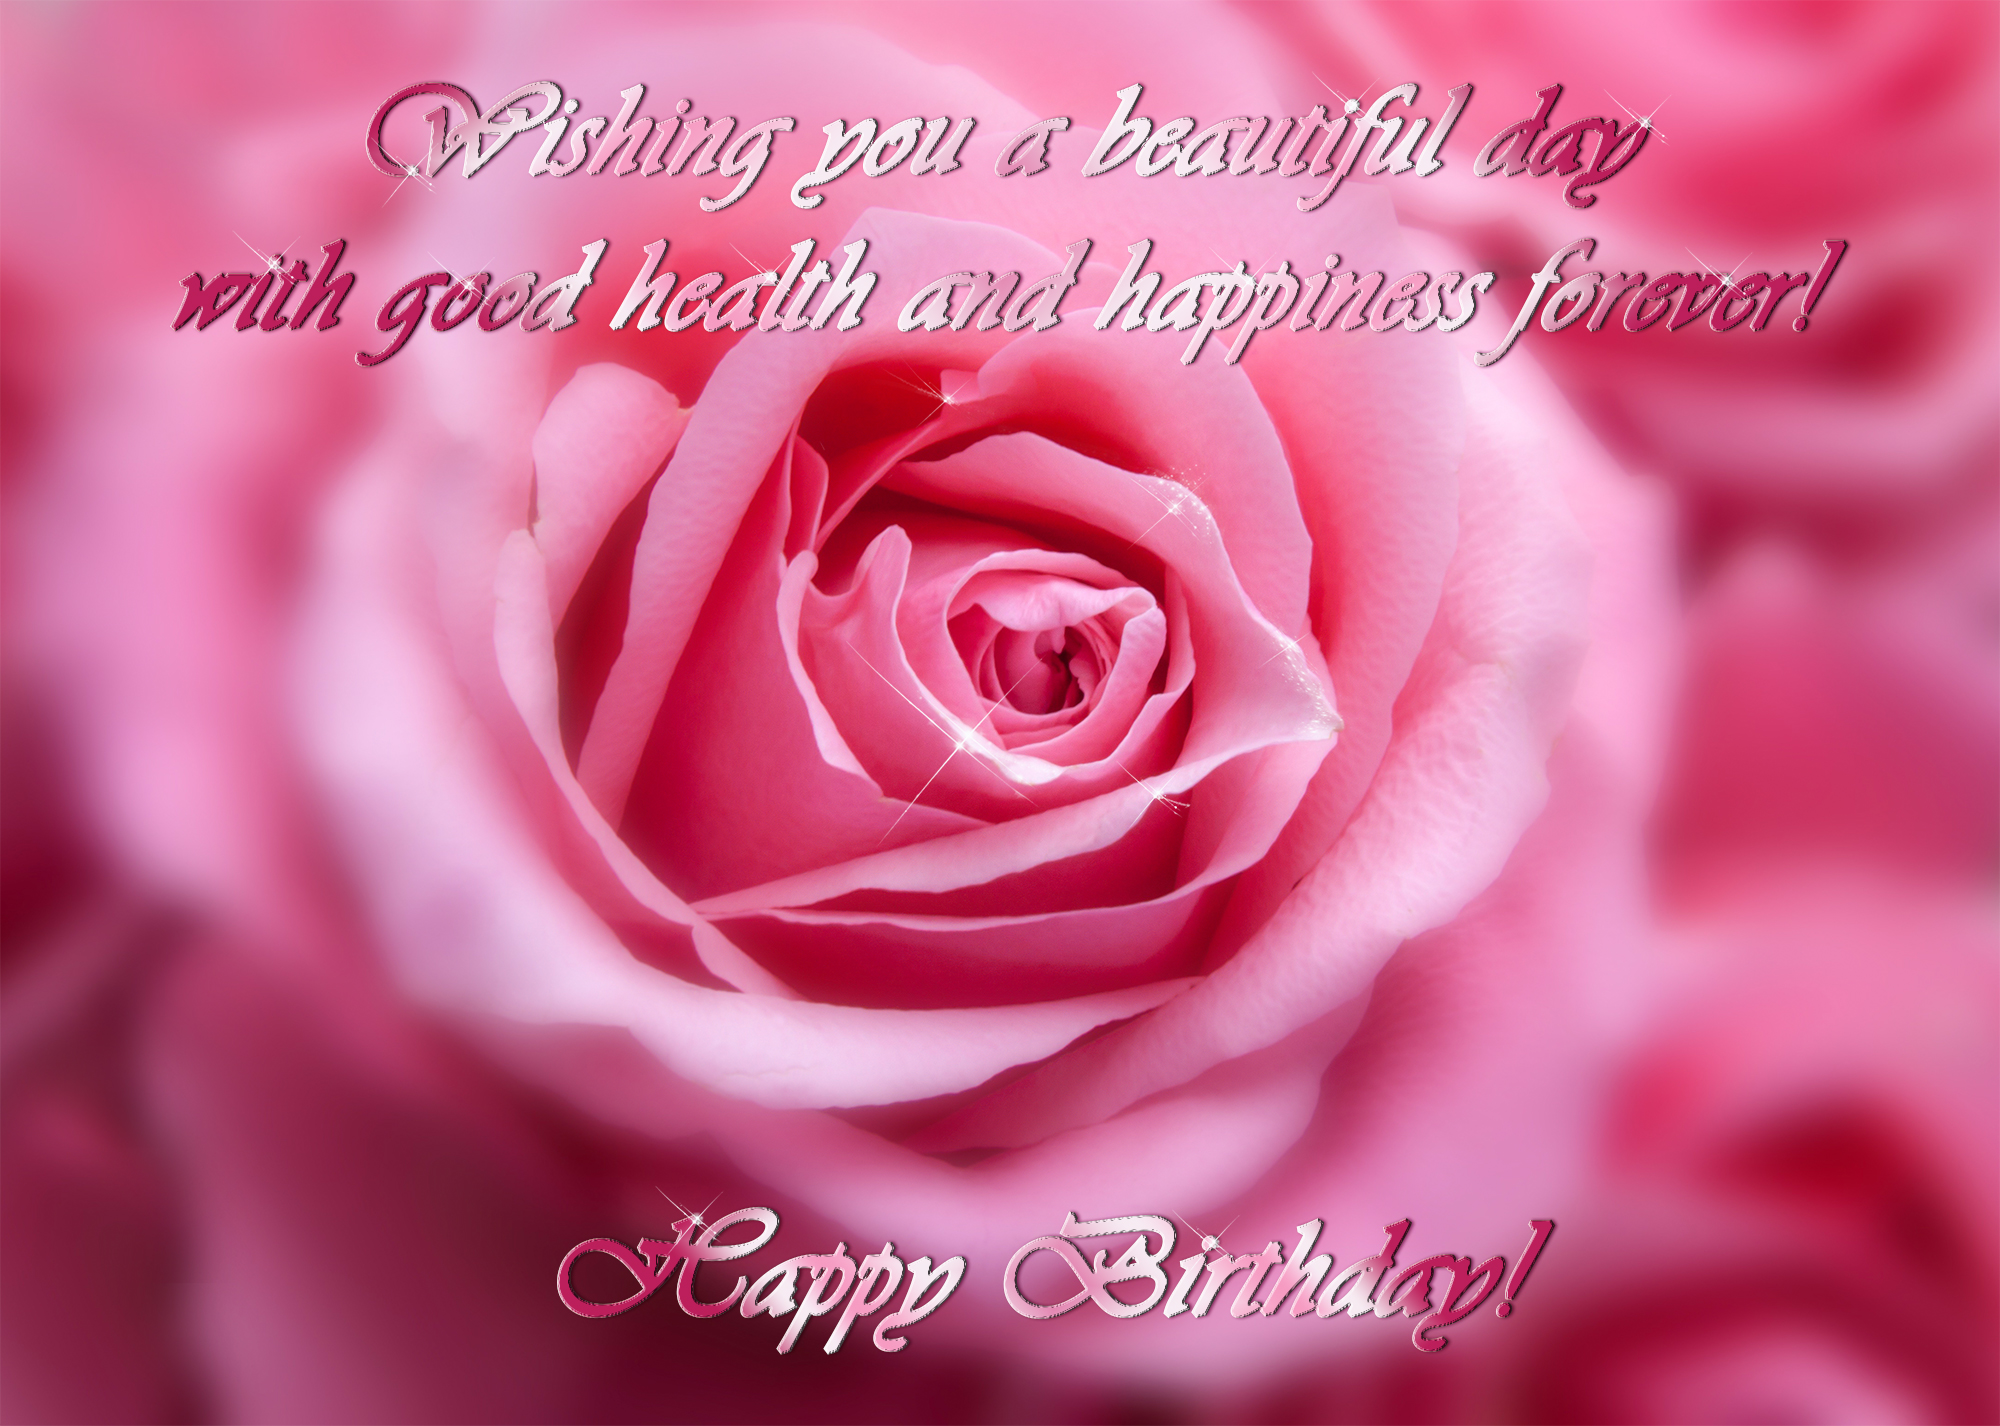 Happy Birthday Images With Rose Flowers In Pink Hd Wallpapers